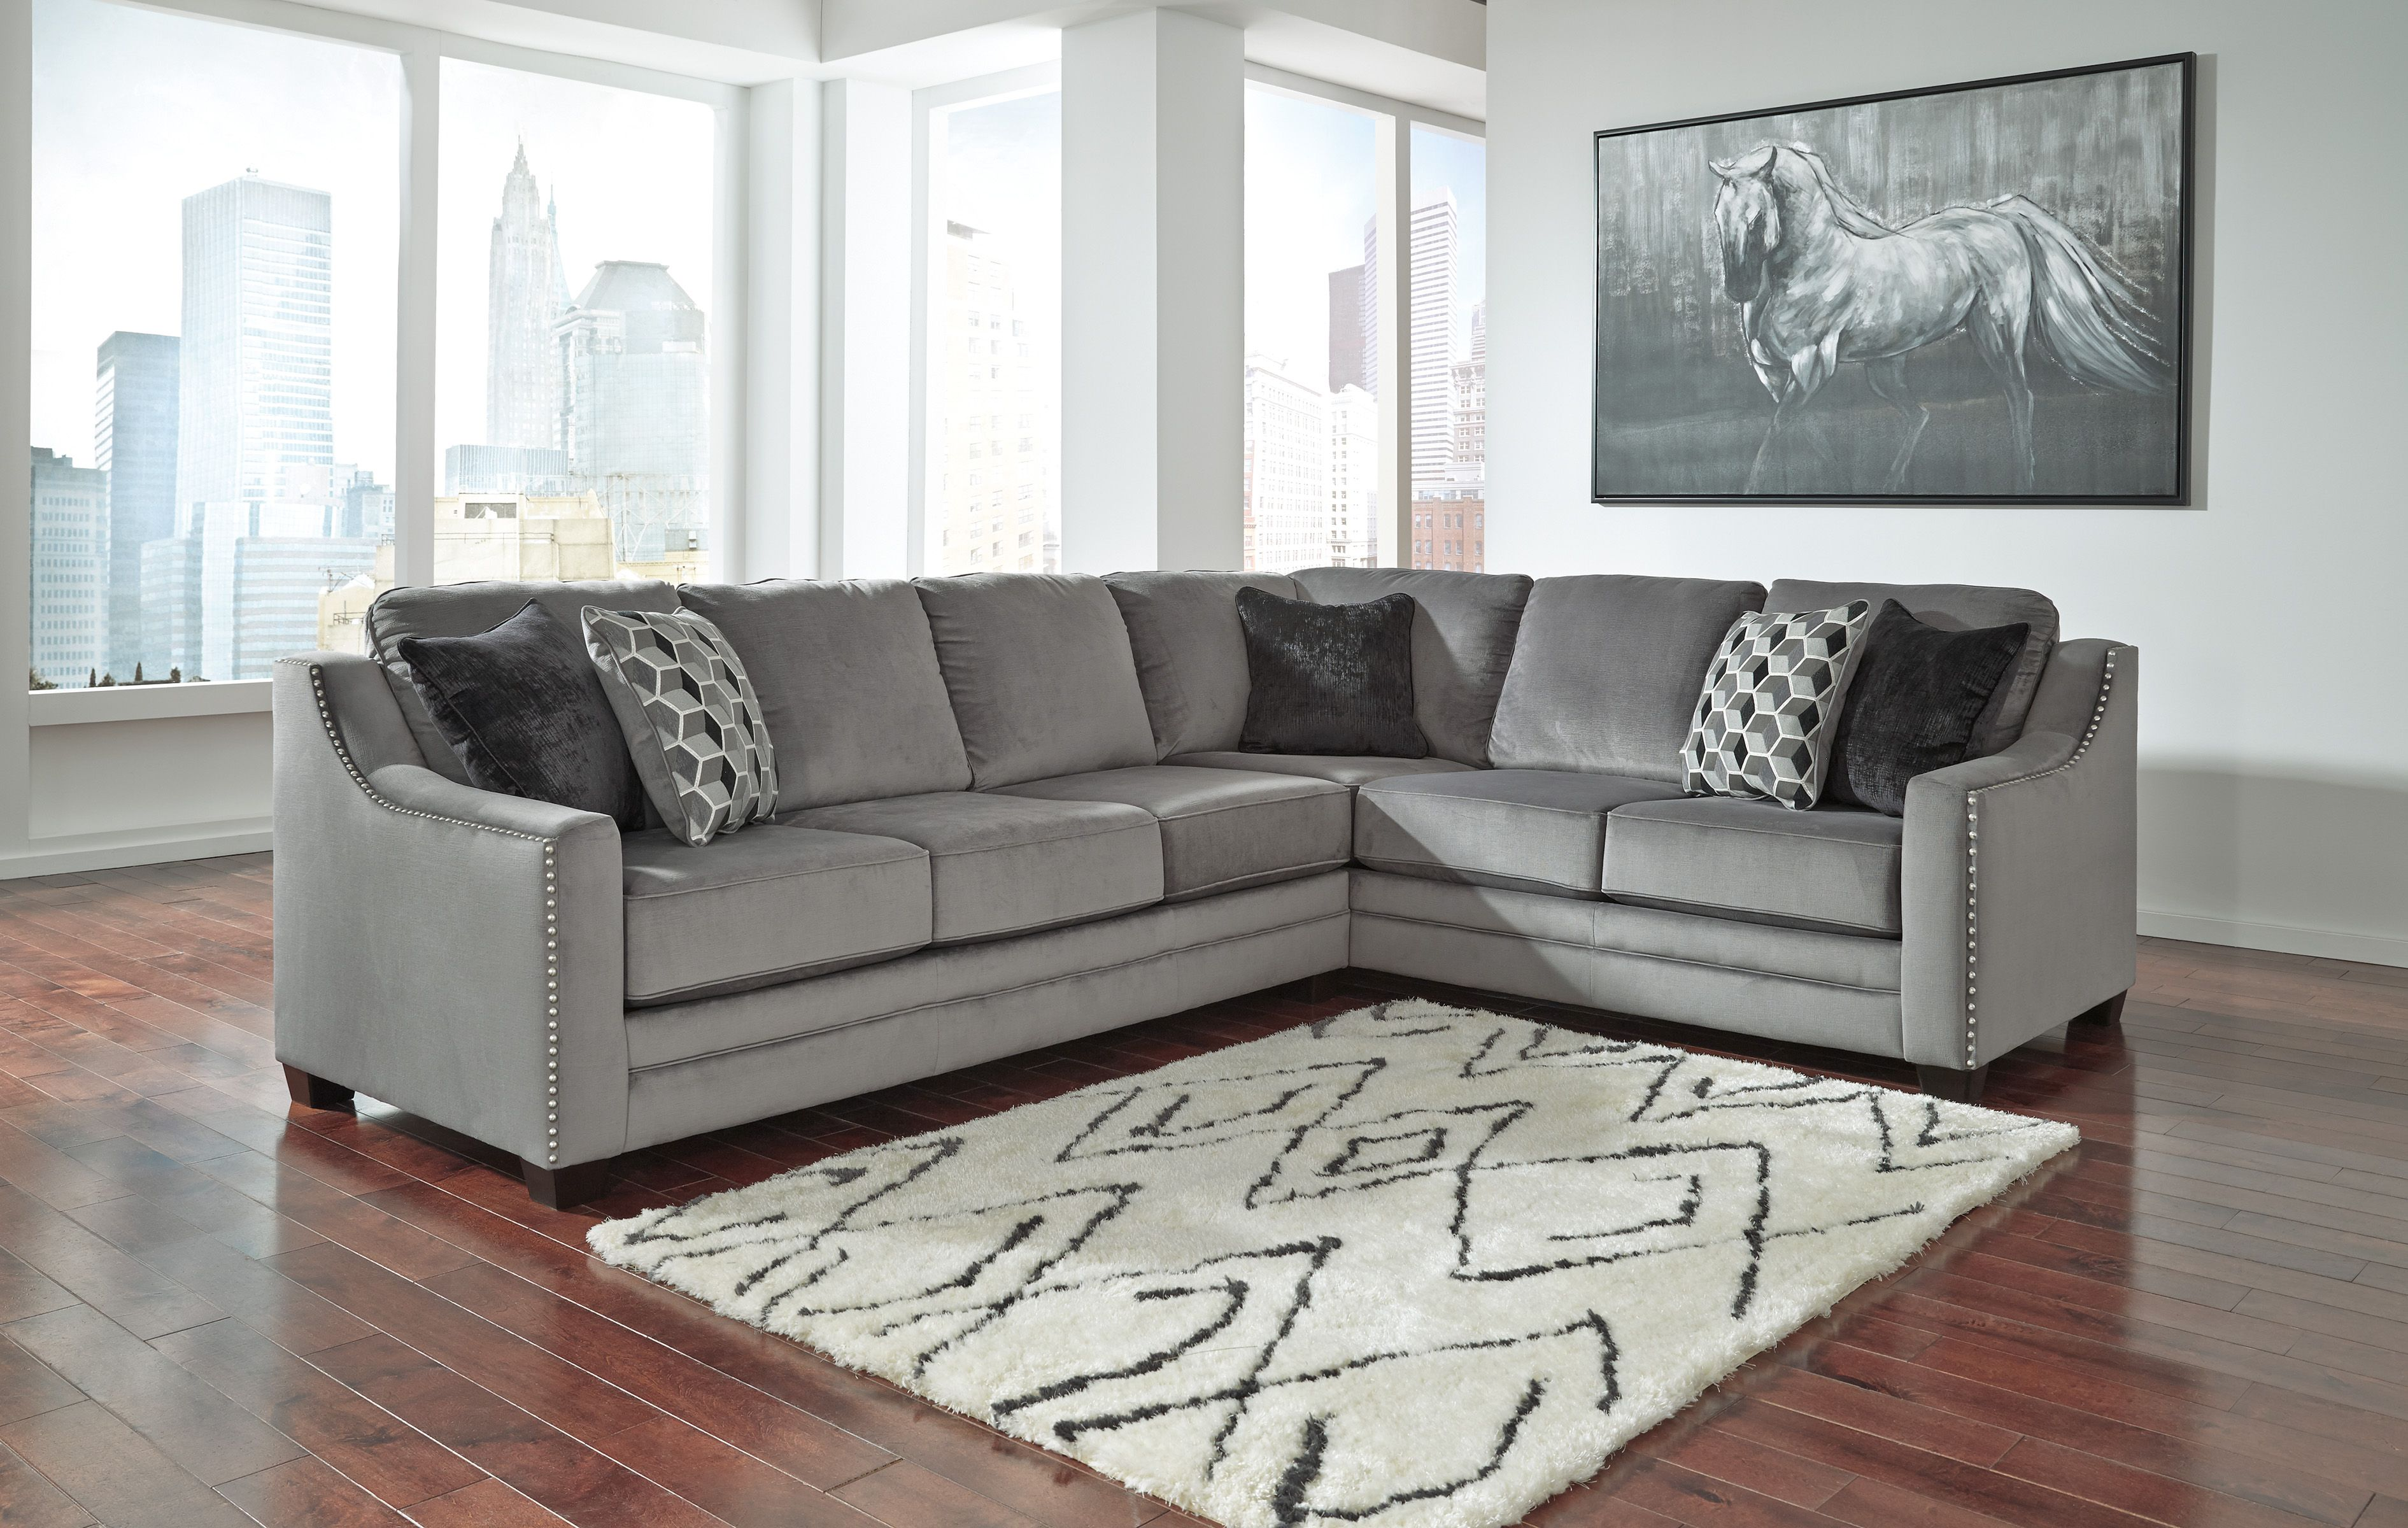 Bicknell 86204 49 Sectional Sofa By Ashley Match Cut Durable Fabrics Contemporary Charcoal Color